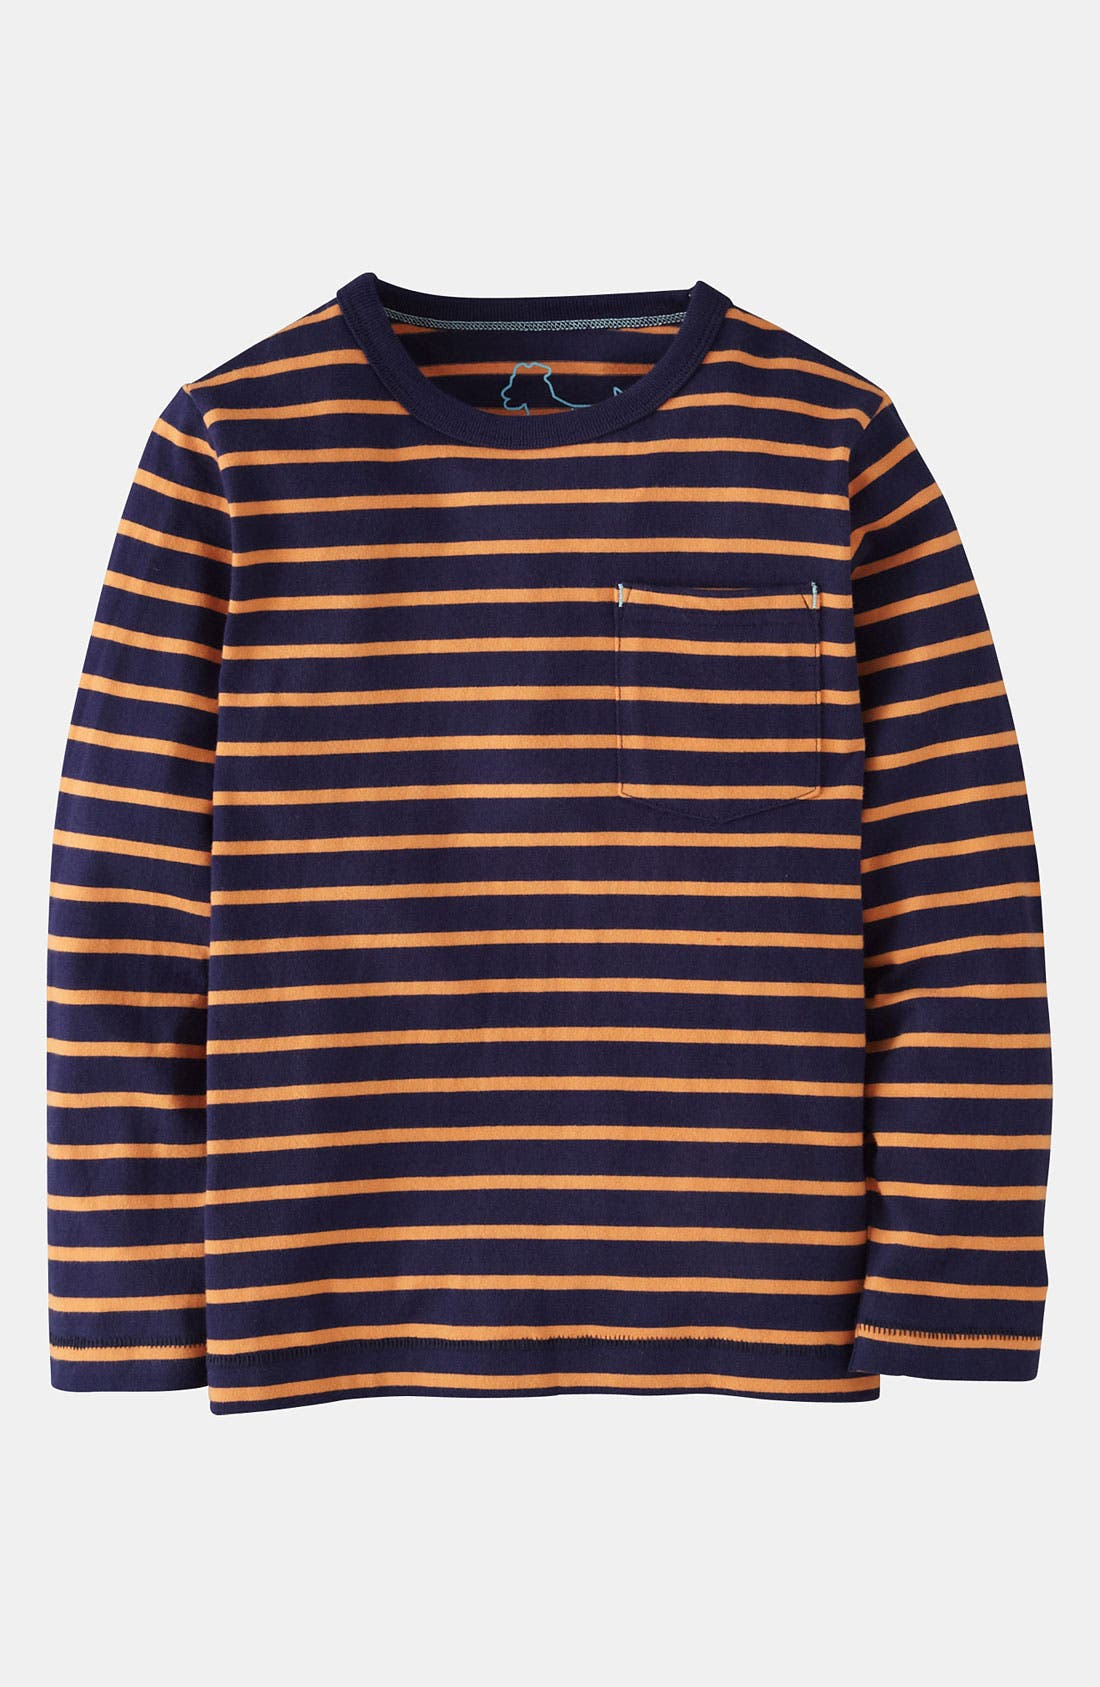 Main Image - Mini Boden Stripe T-Shirt (Little Boys & Big Boys)